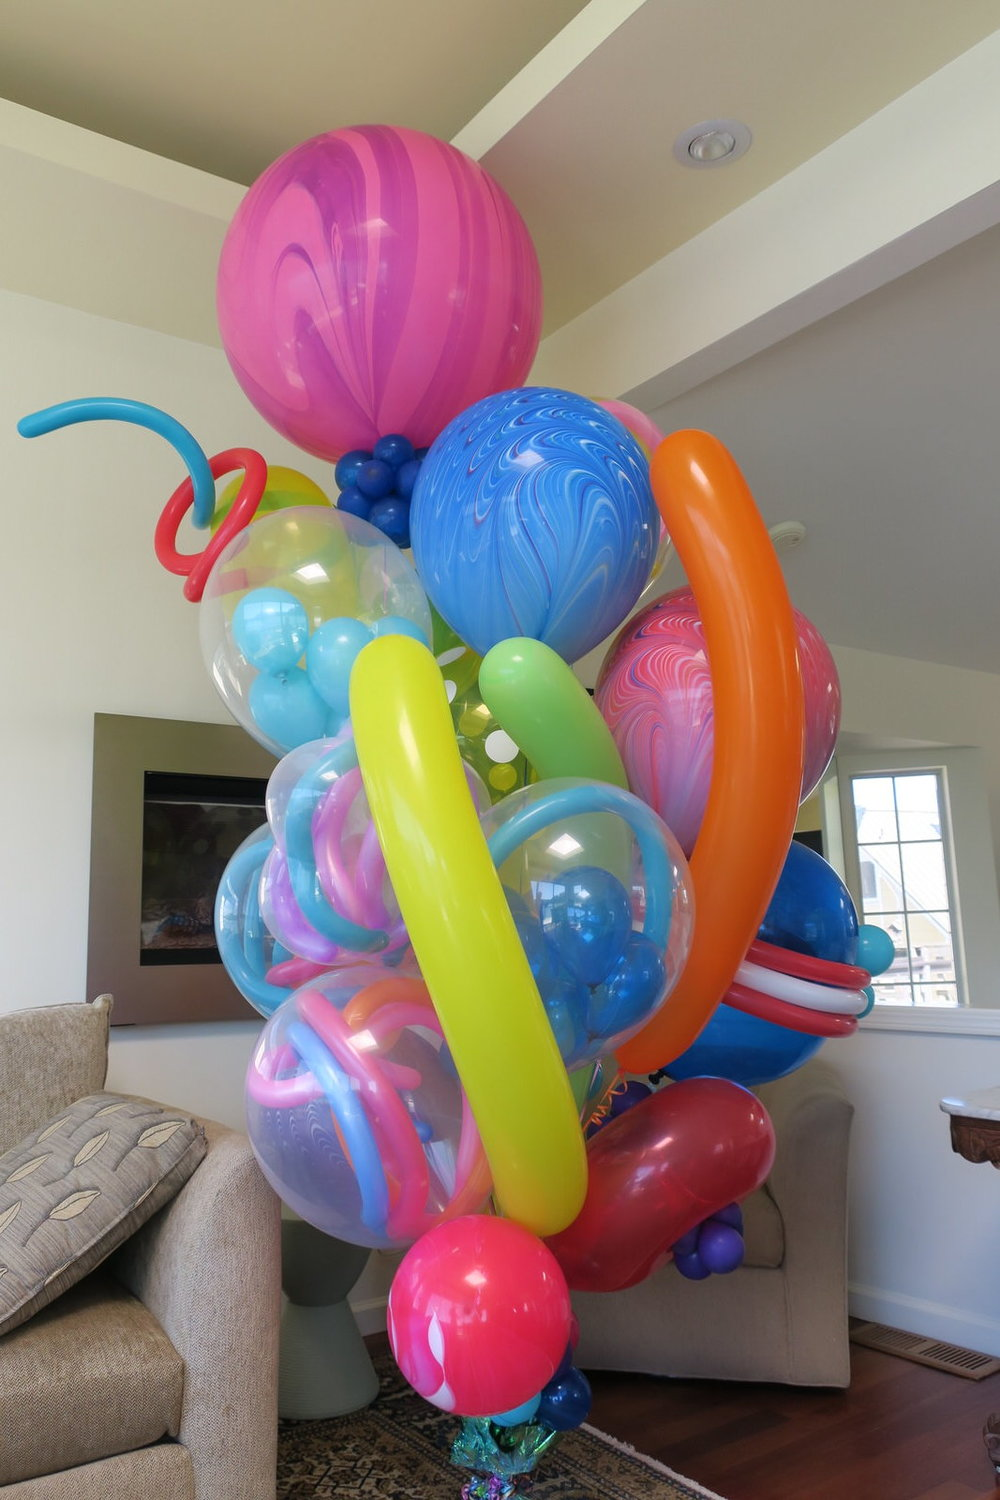 Balloon Specialties Unique Balloon Bouquet.JPG